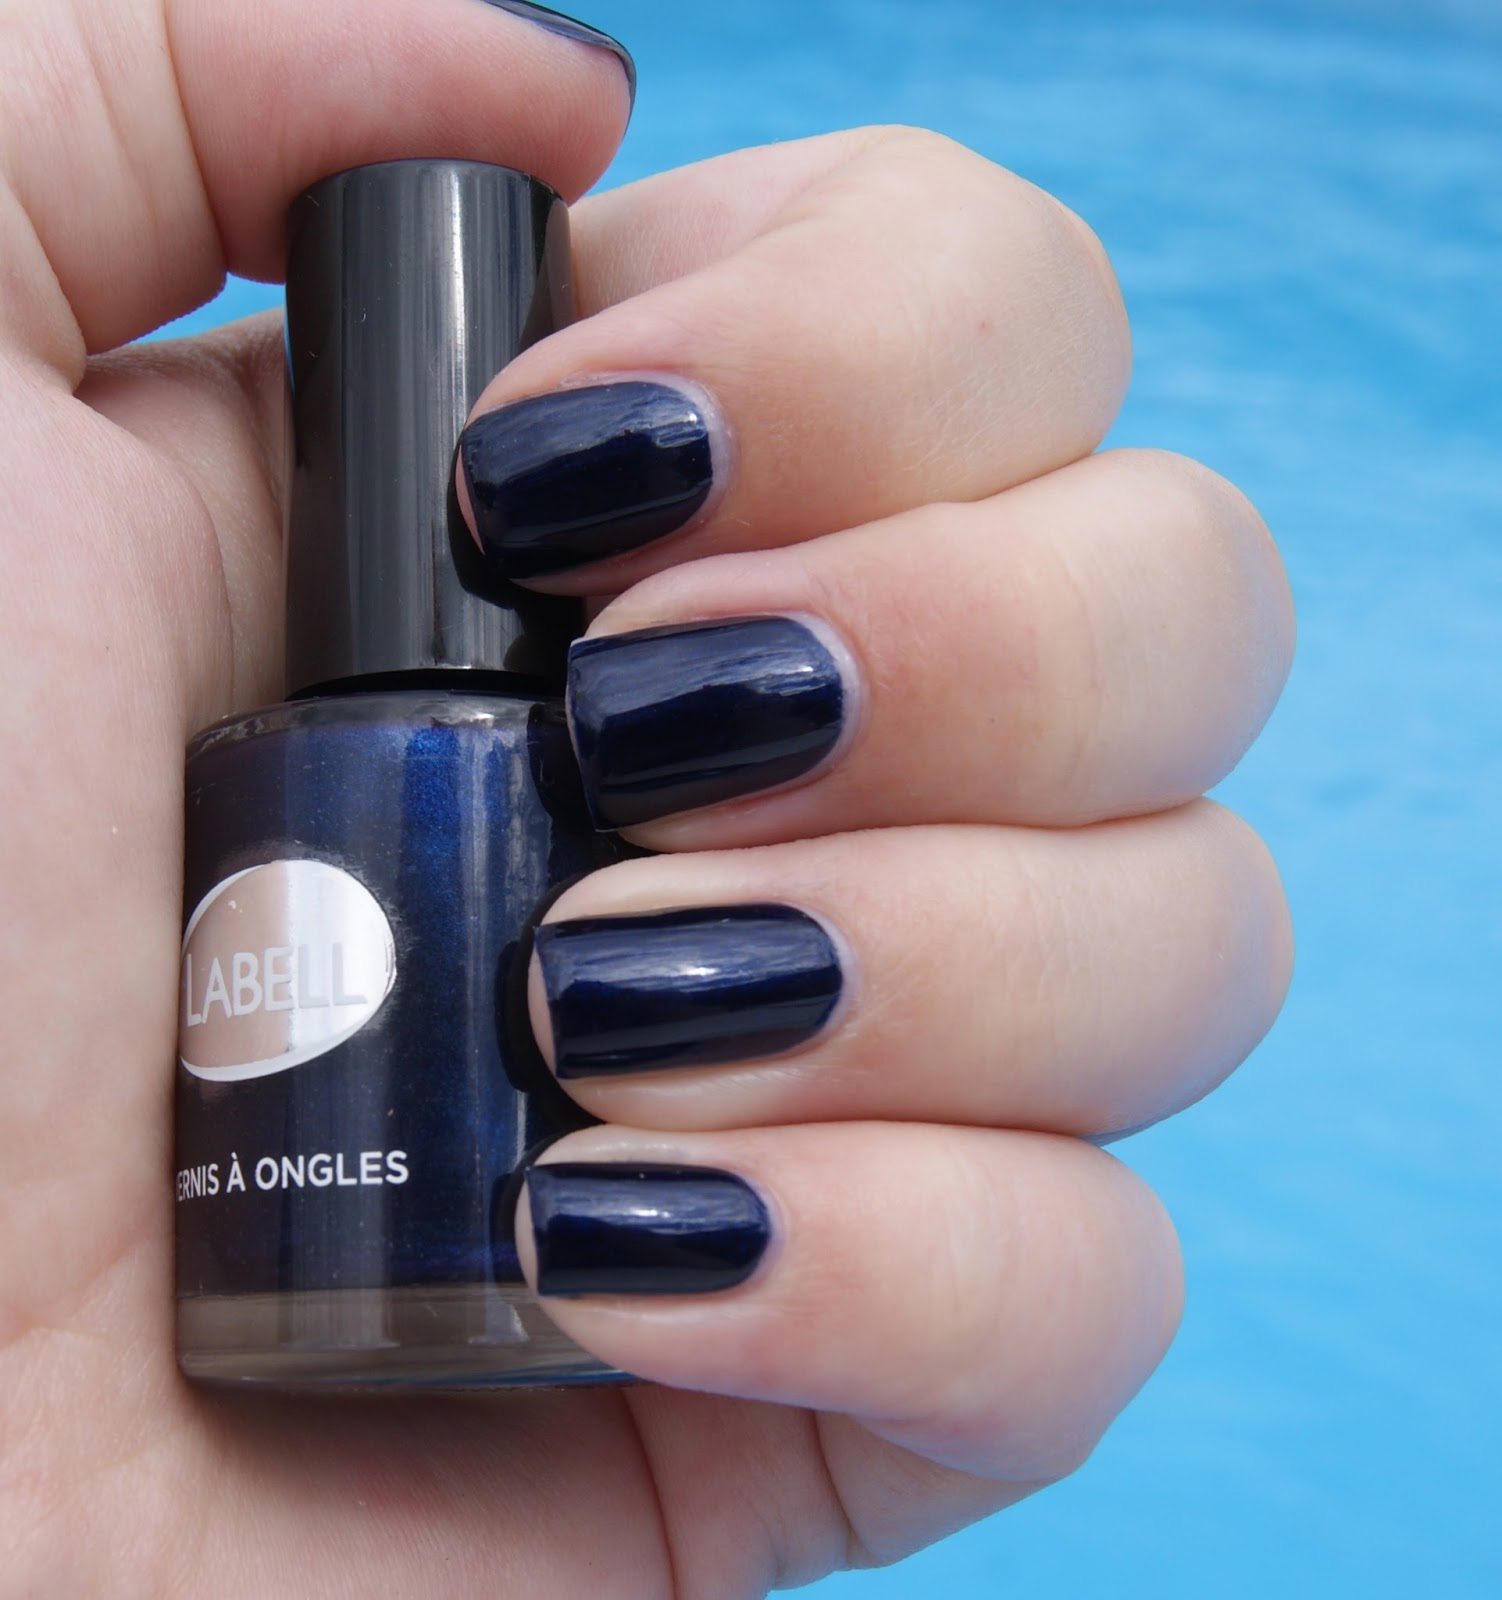 intermarch lance labell paris les vernis ongles bleu nuit laura and her beauty world. Black Bedroom Furniture Sets. Home Design Ideas